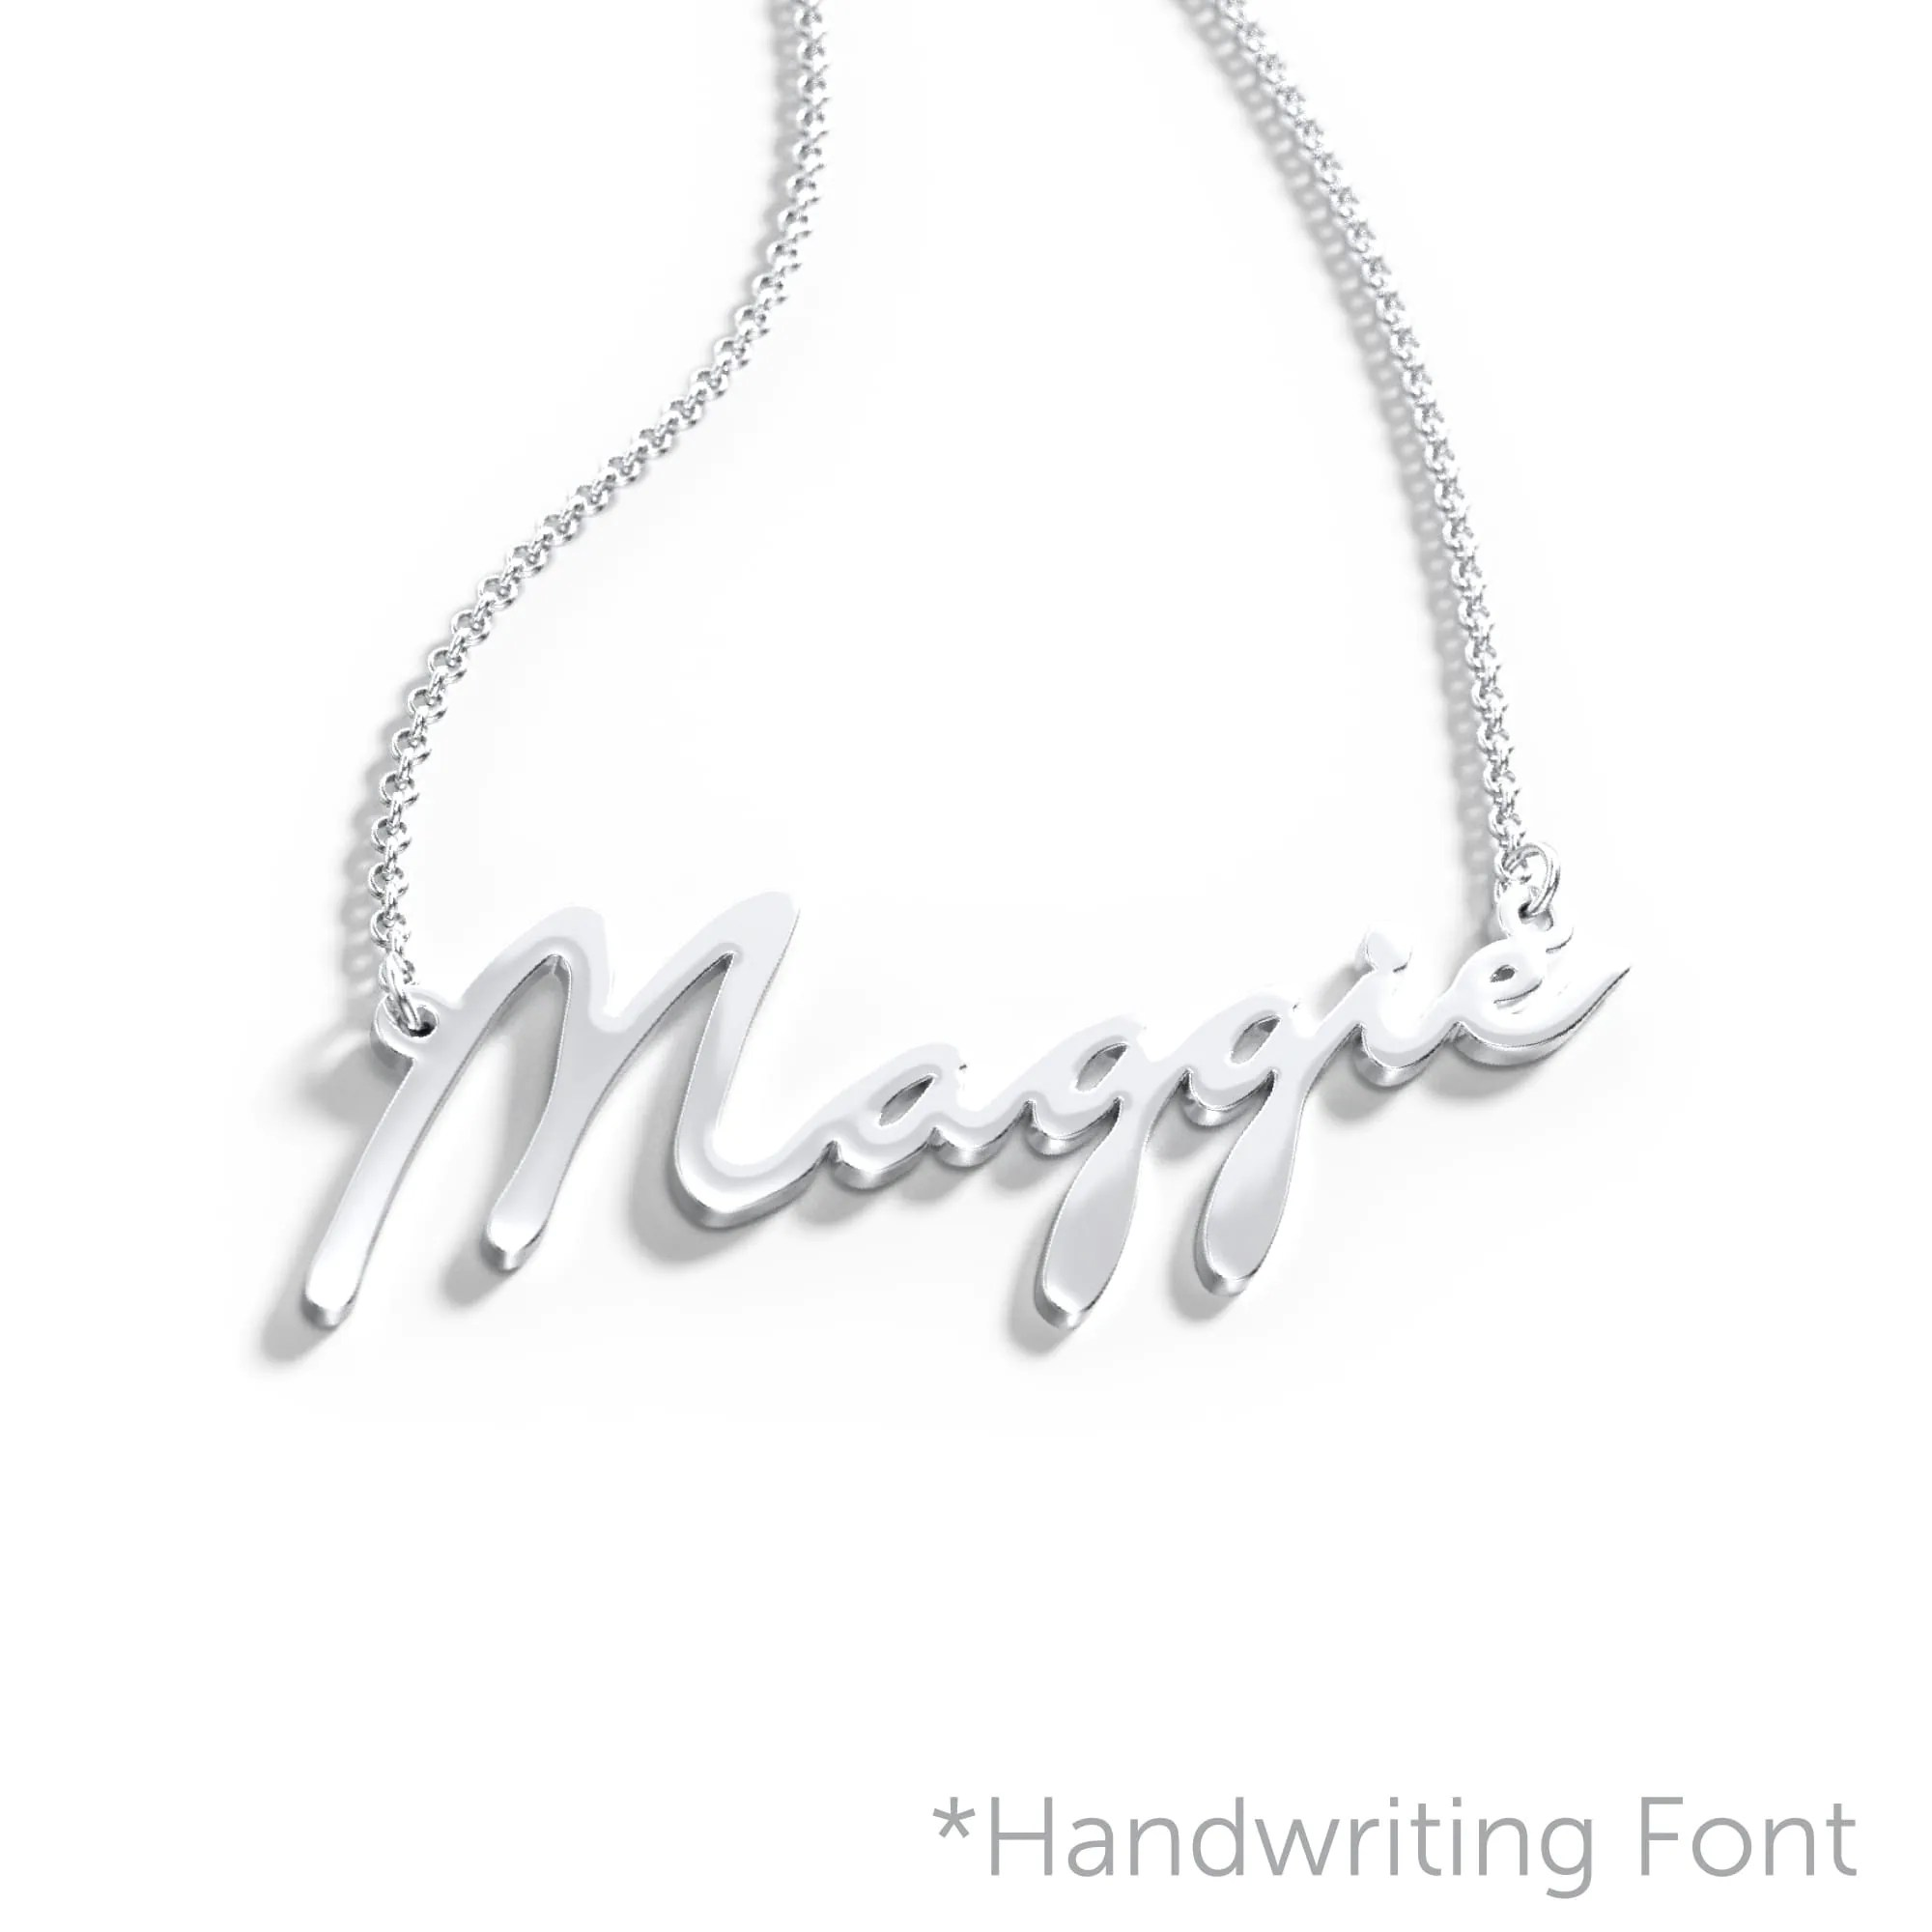 10K & 14K Solid Gold Never Plated Personalized Name image 4